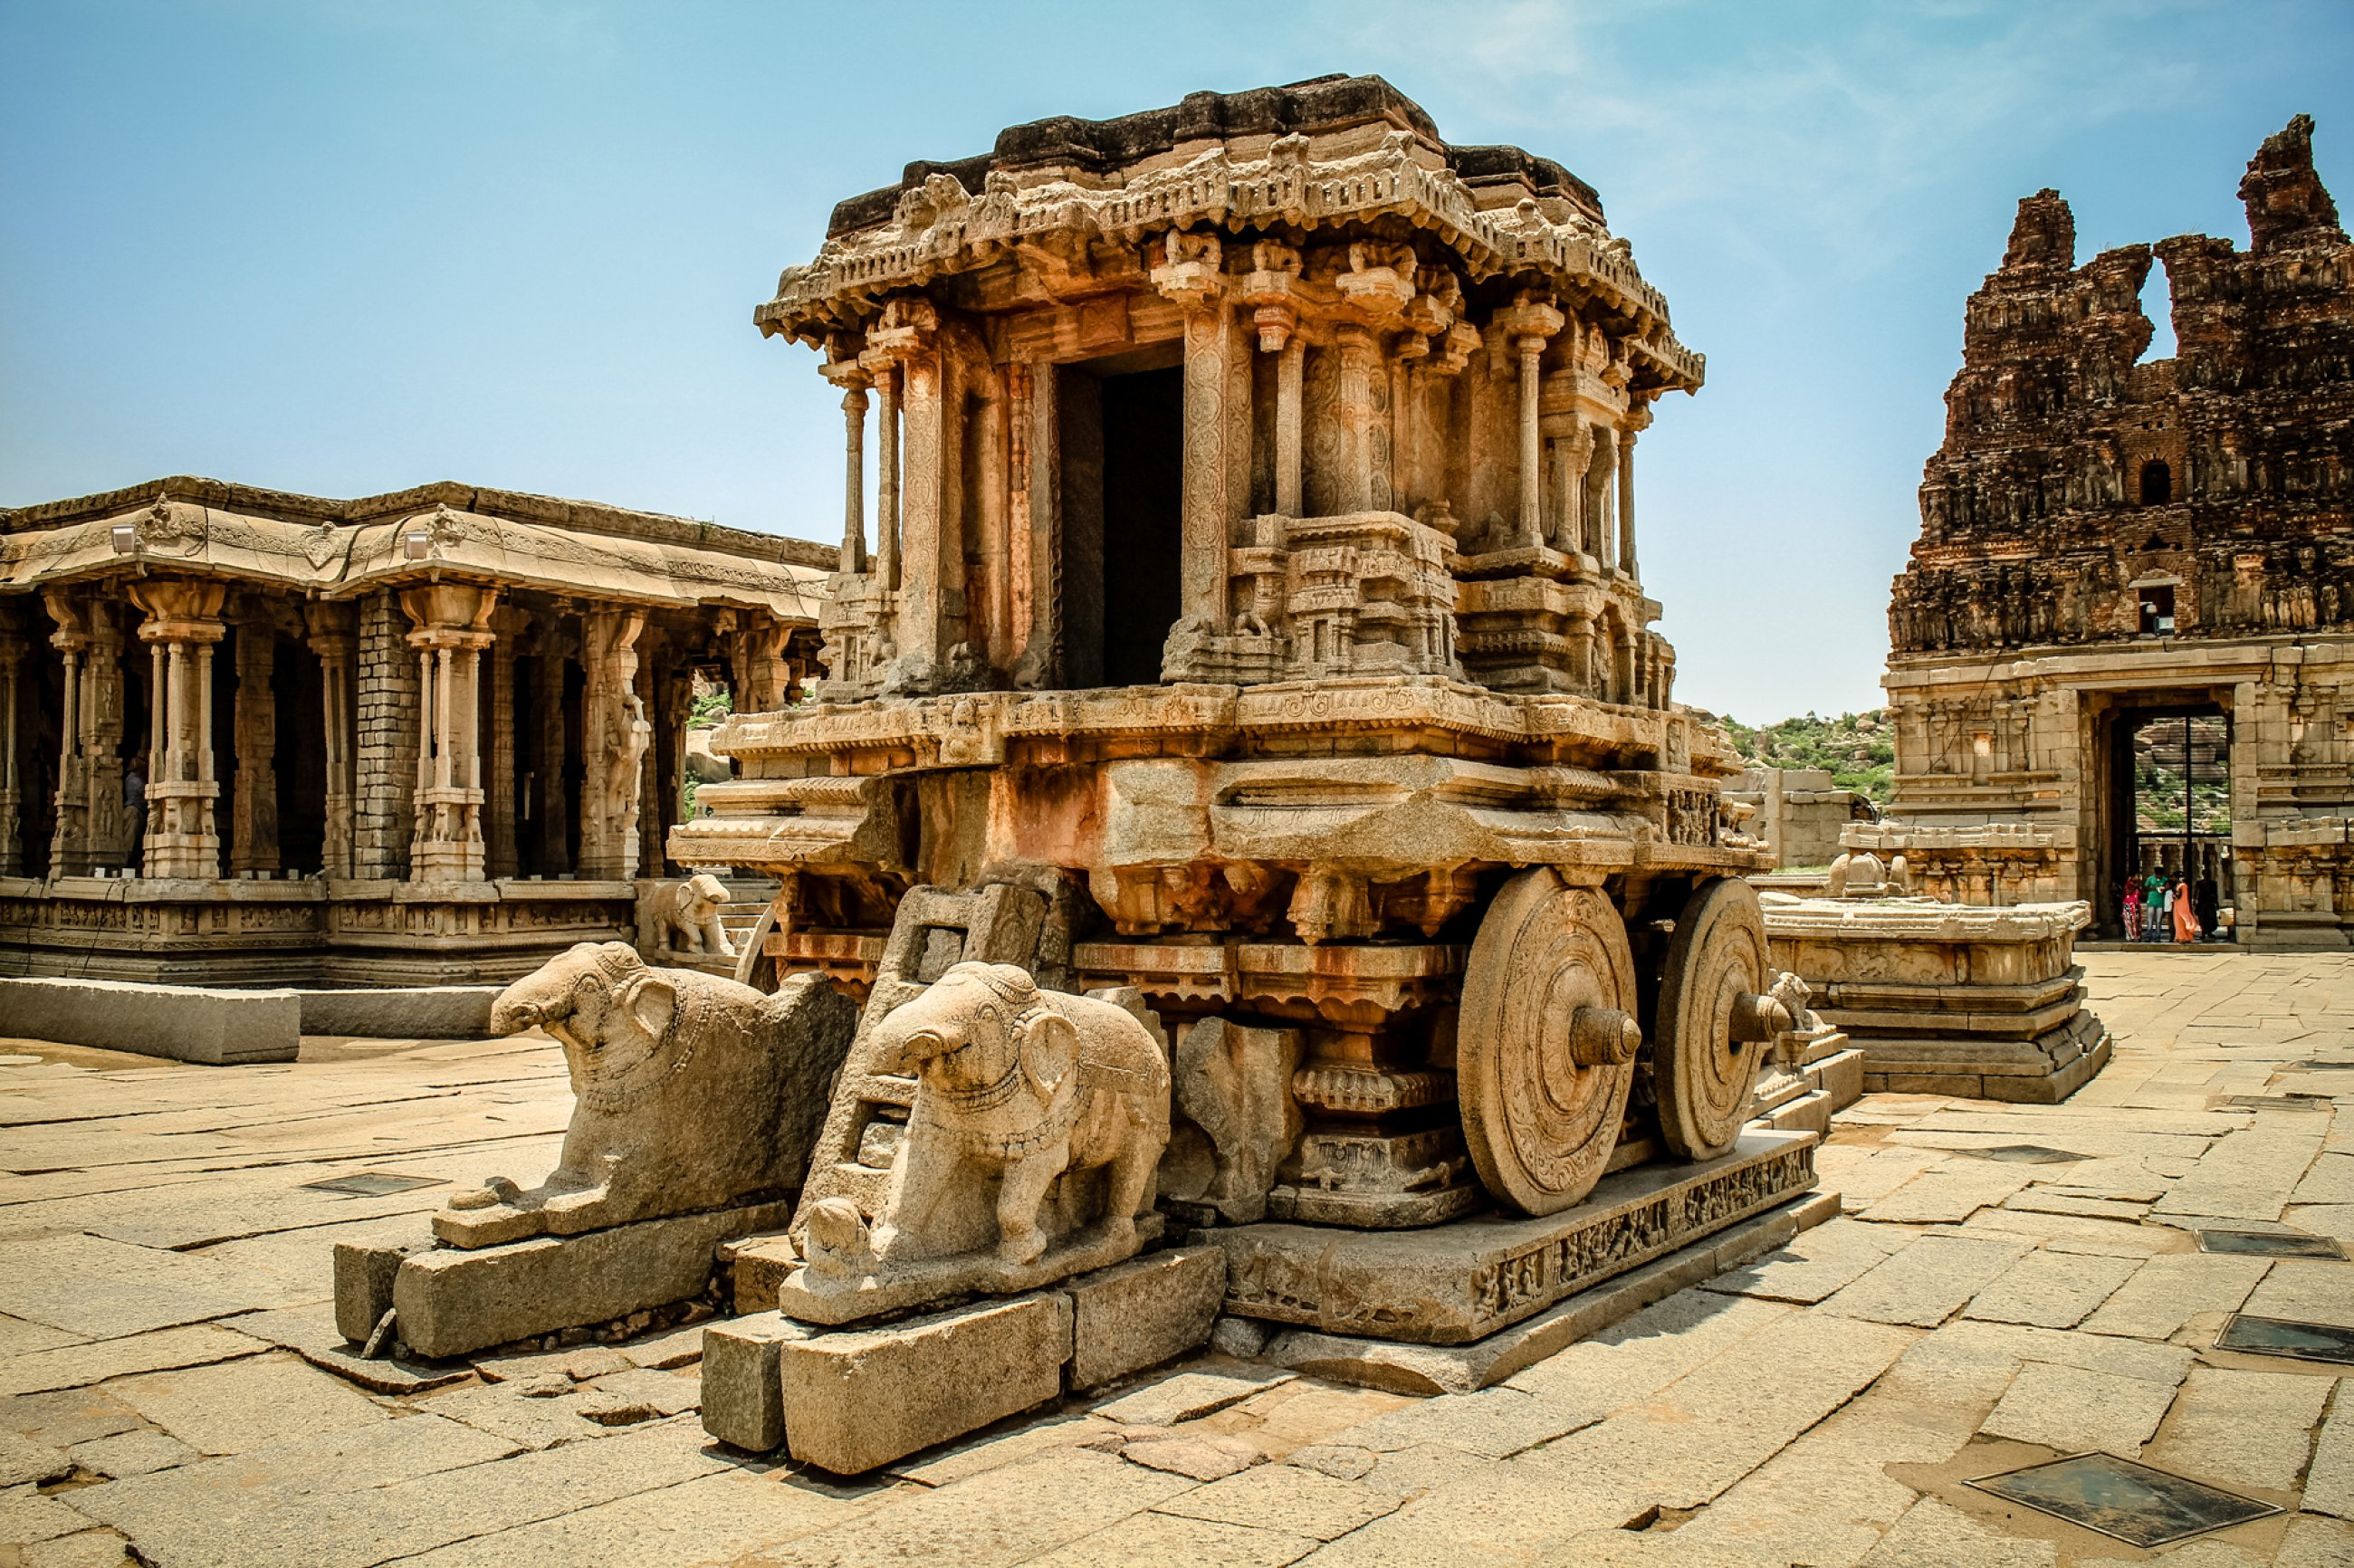 https://bubo.sk/uploads/galleries/4918/hampi-india-dreamstime-xl-42070981.jpg